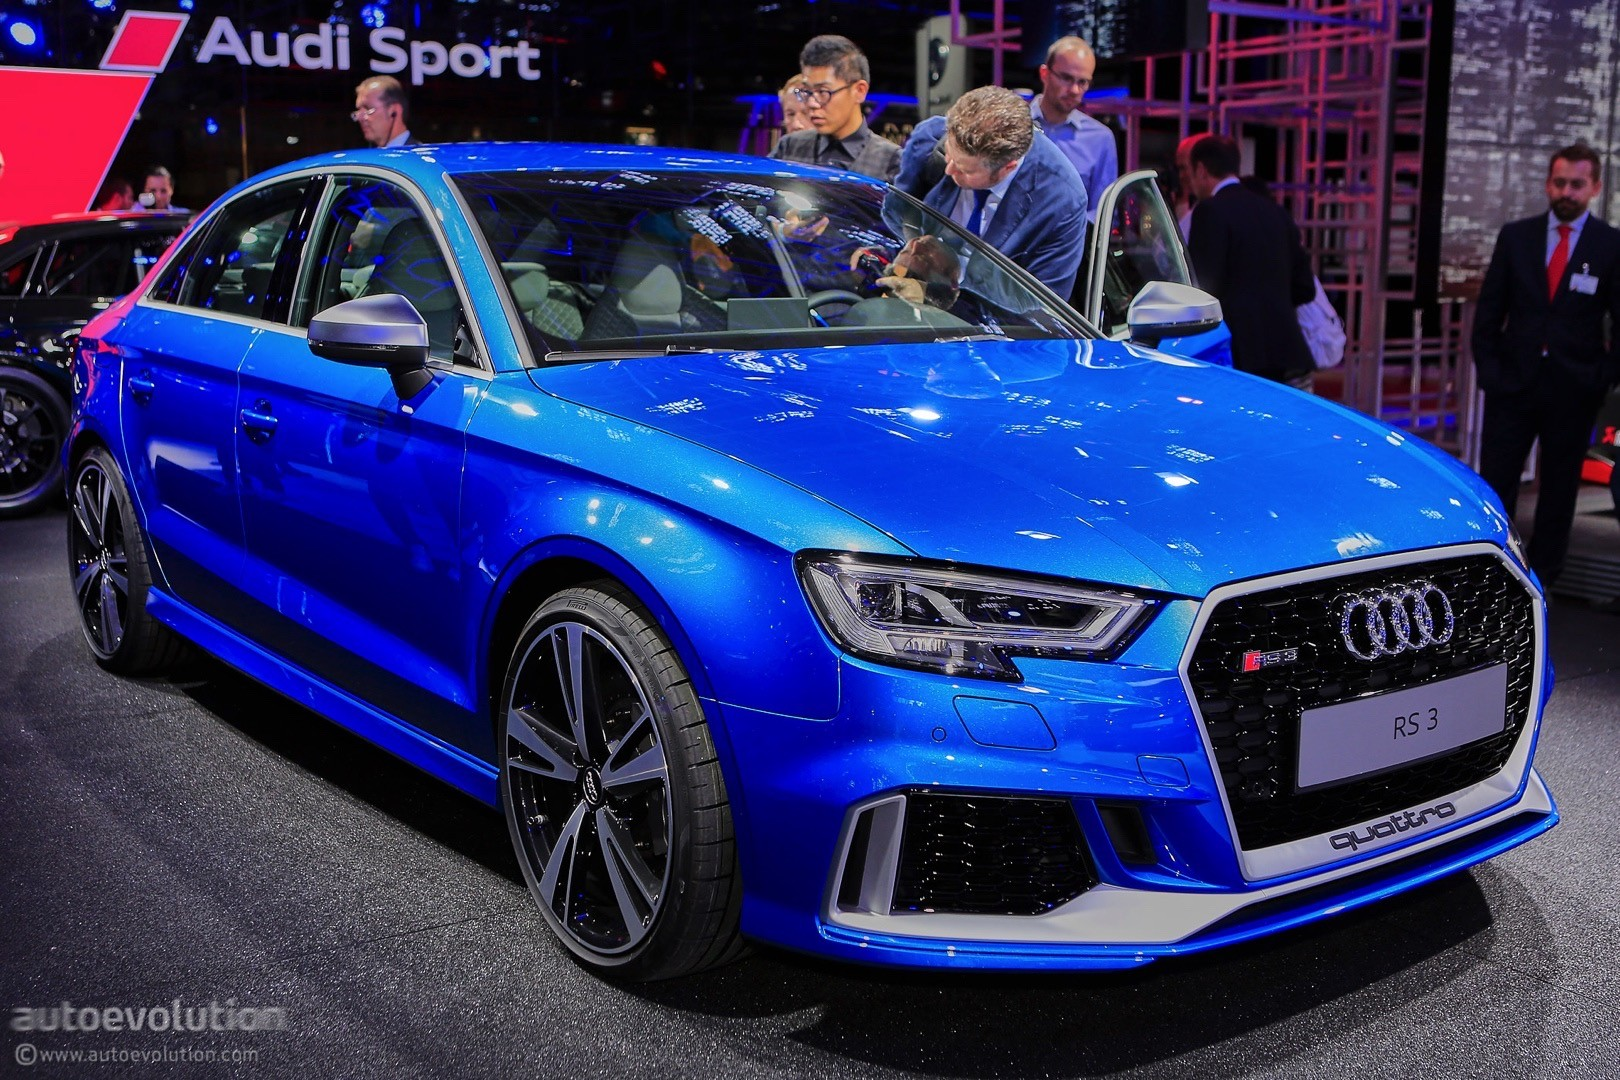 2018 Audi Rs3 Sedan Price Leaked In Canada Should Be